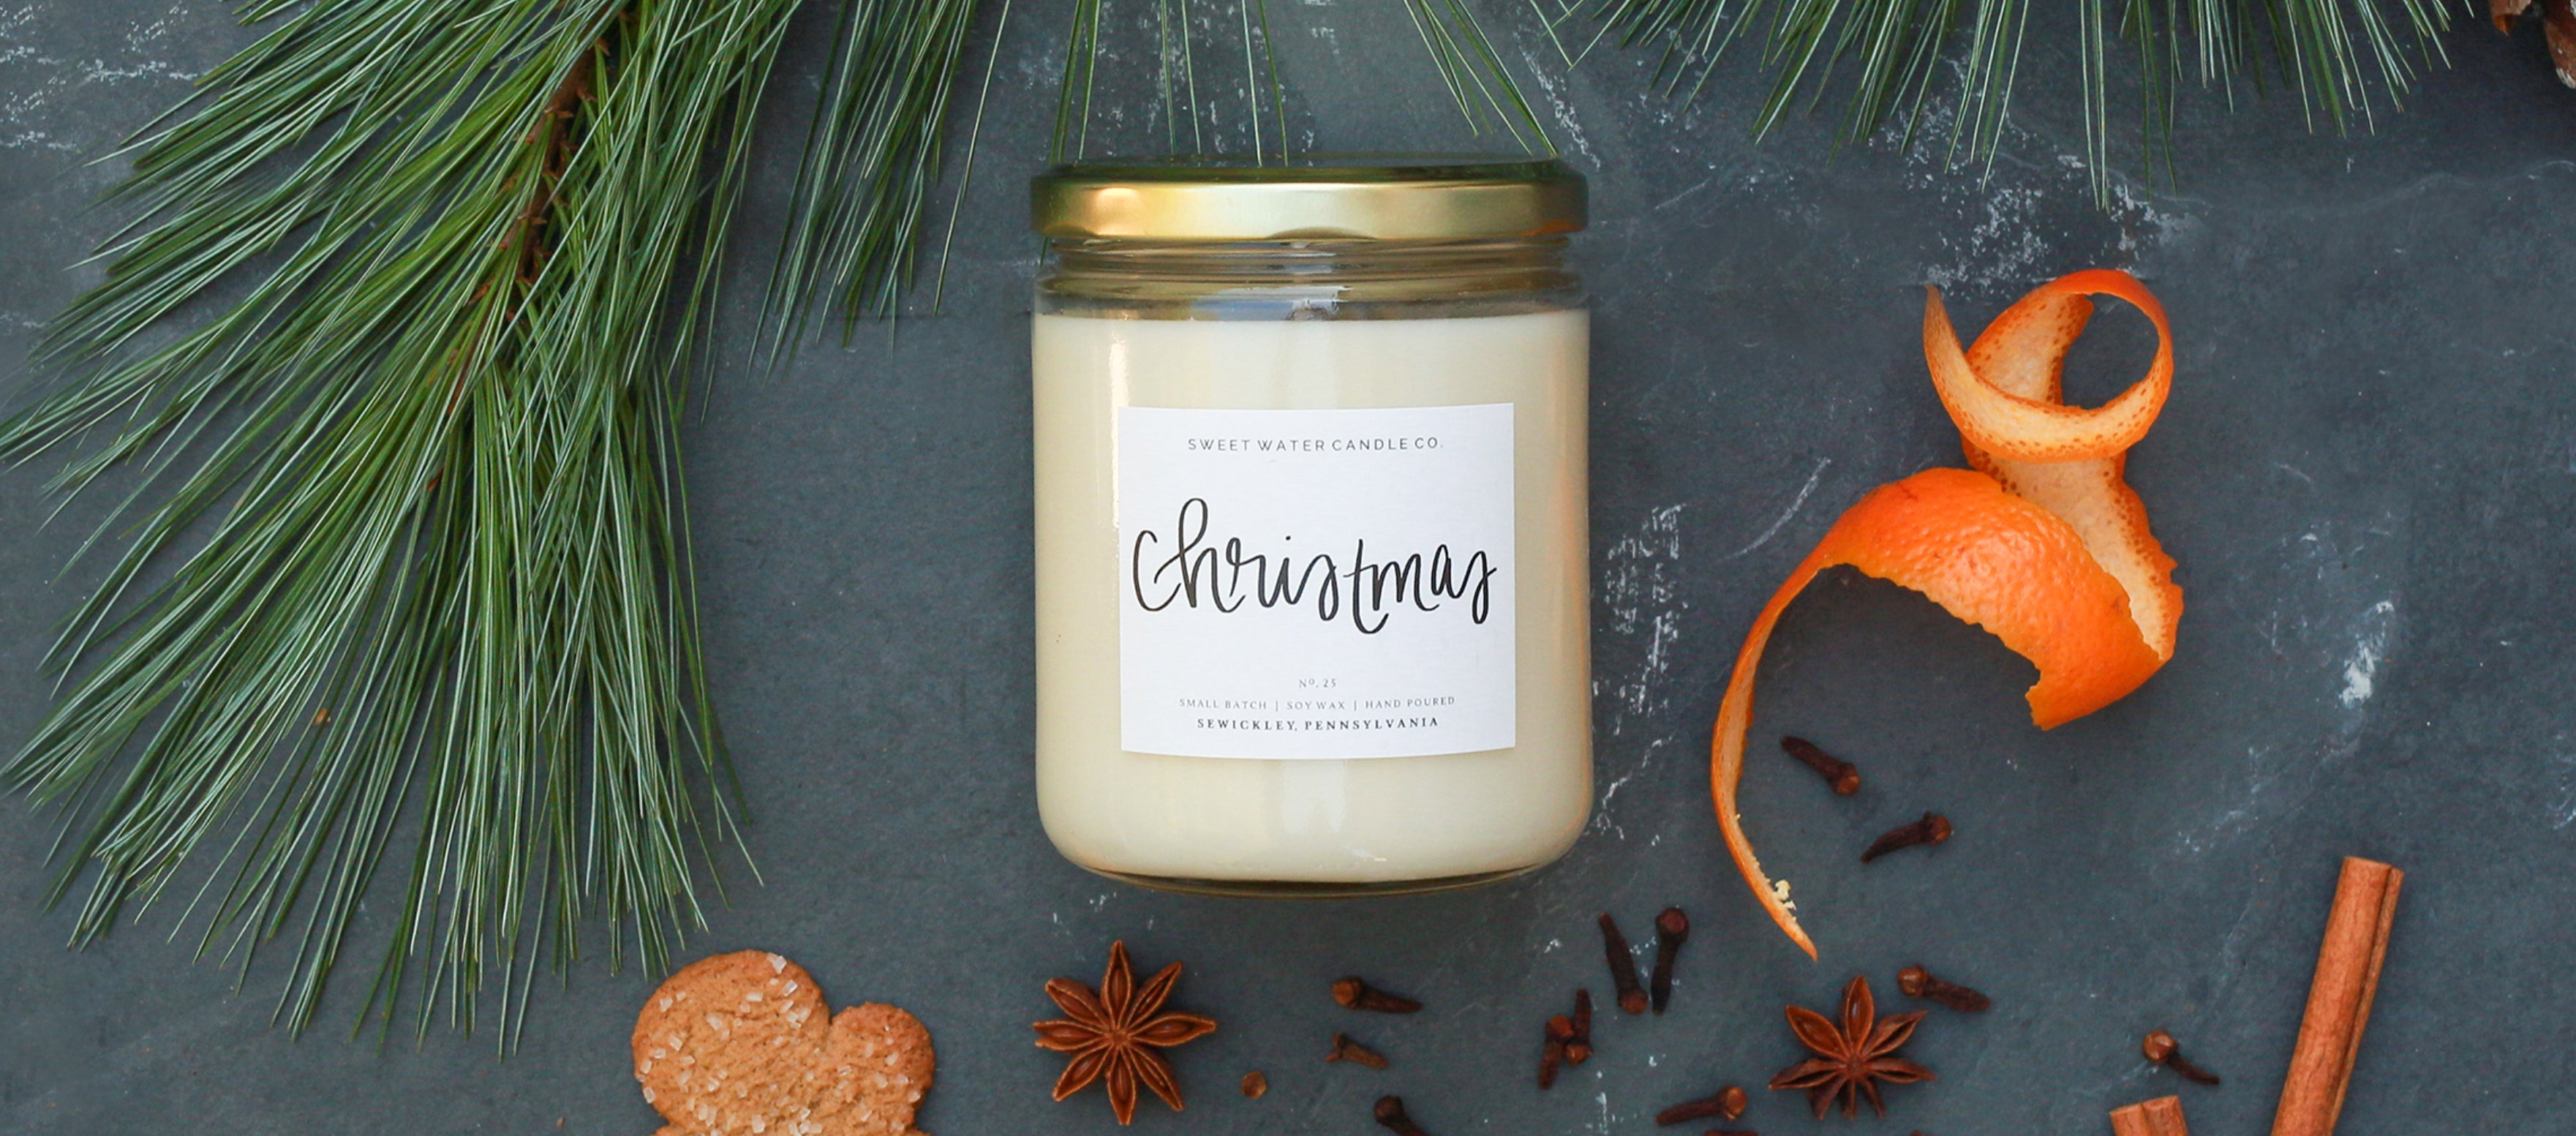 winter u2013 sweet water candle co